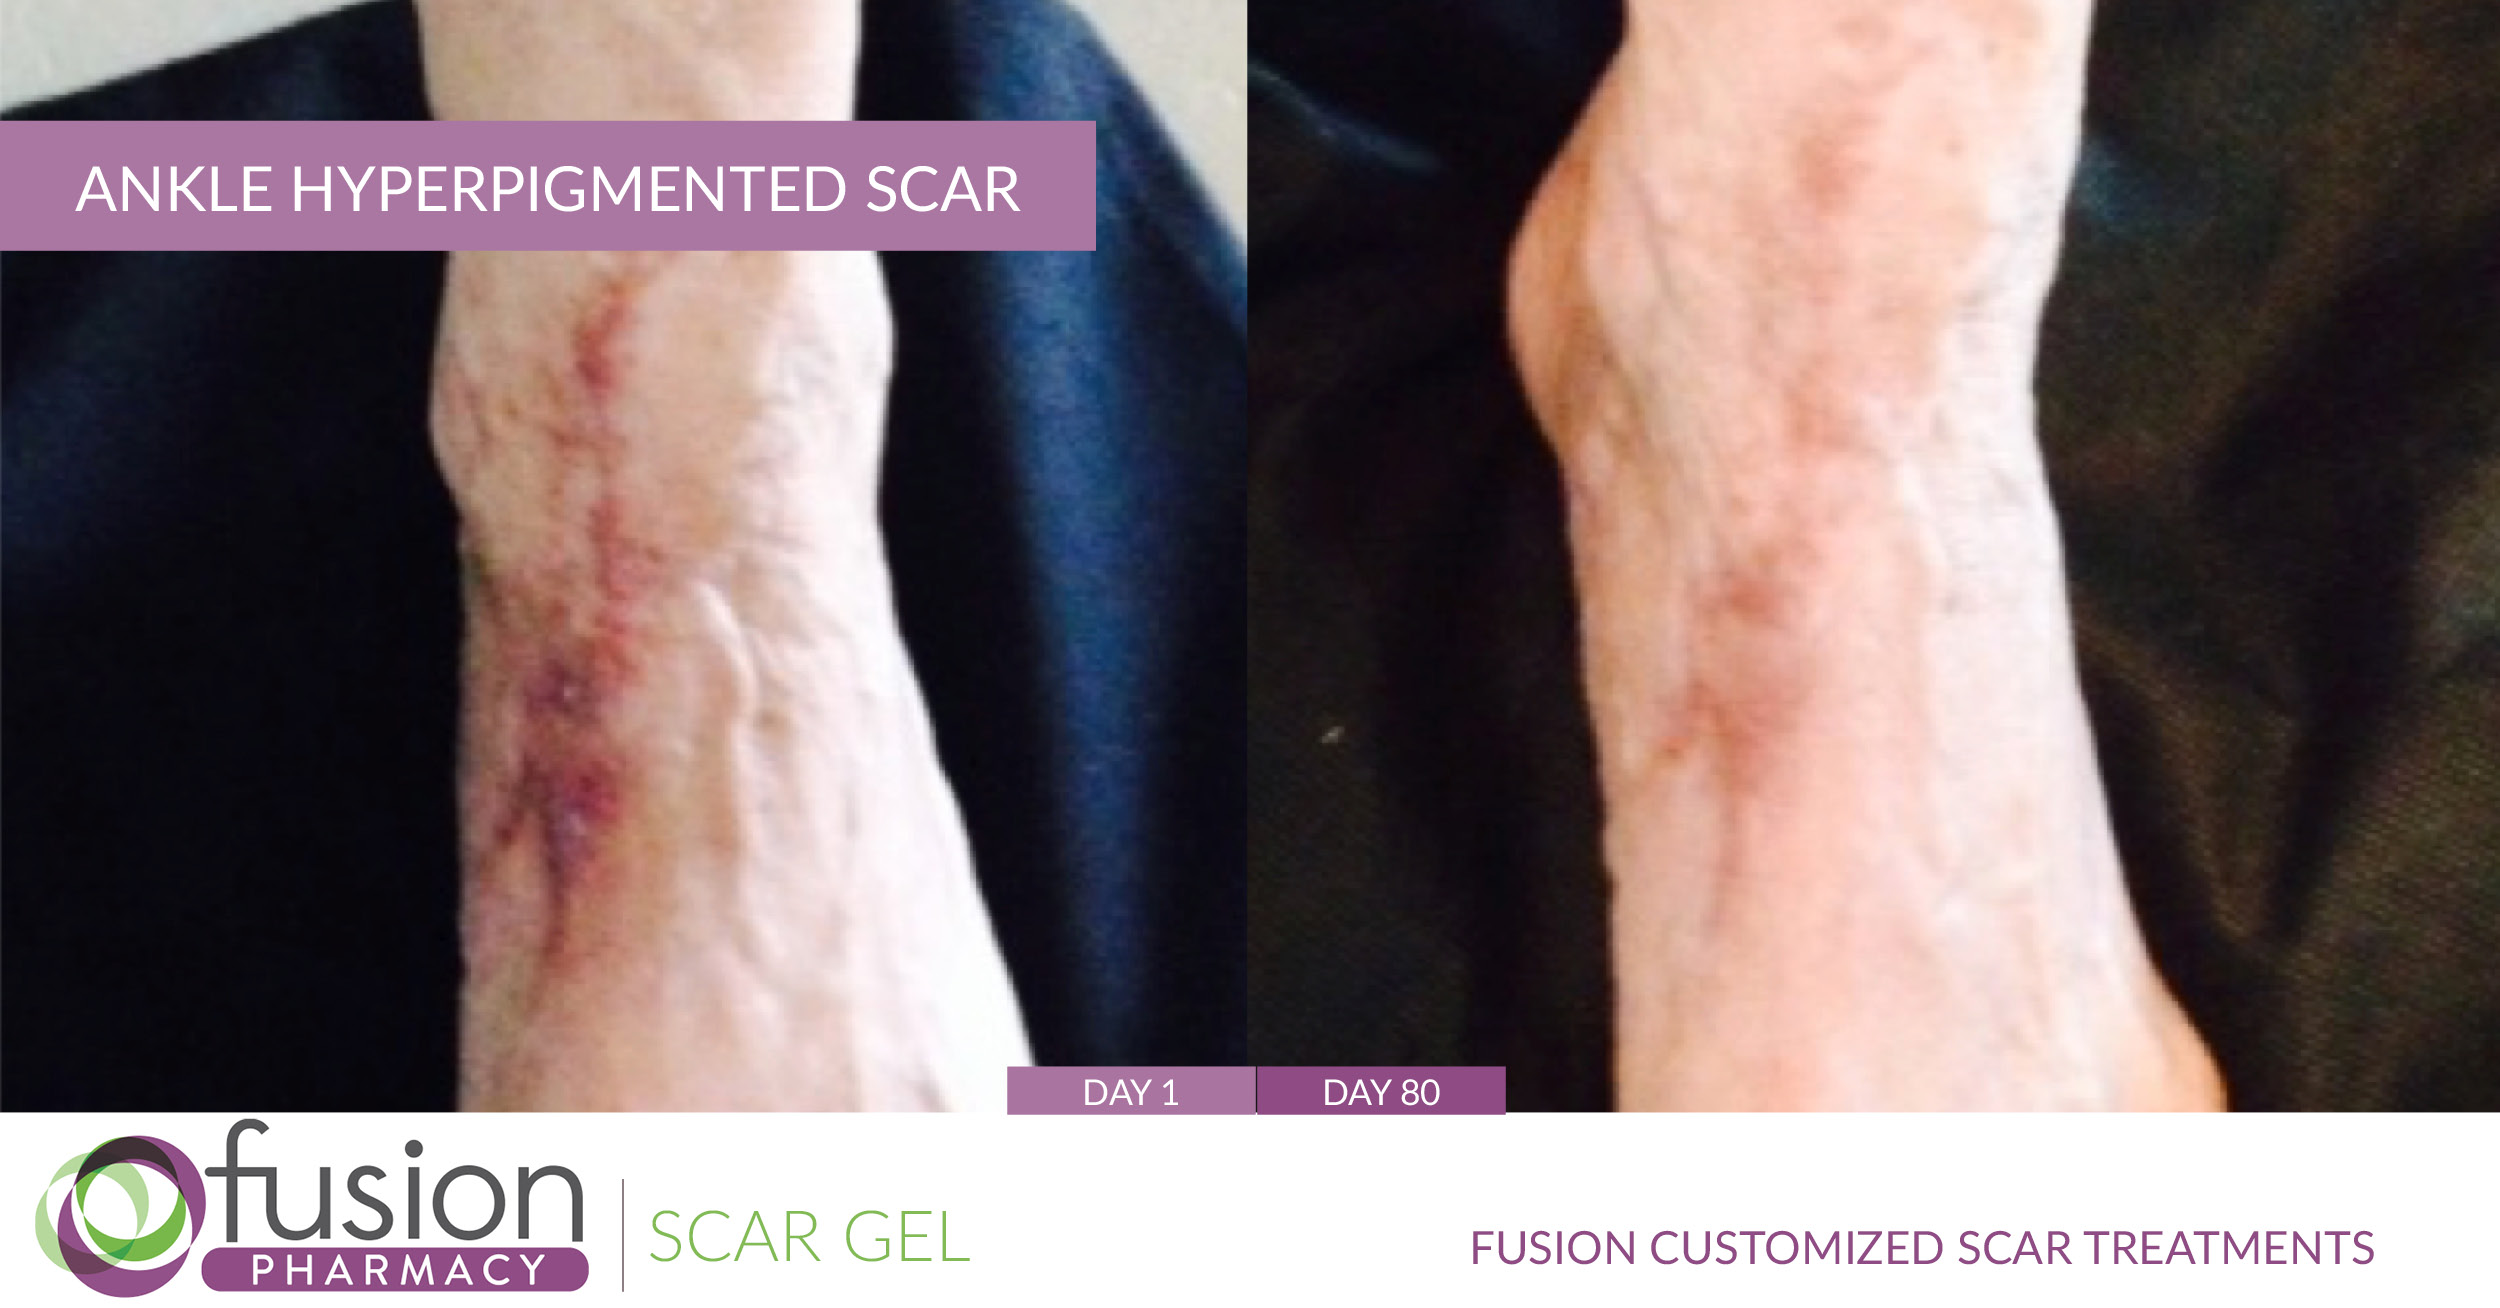 Hyperpigmented Scars Scar Gel Fusion Pharmacy